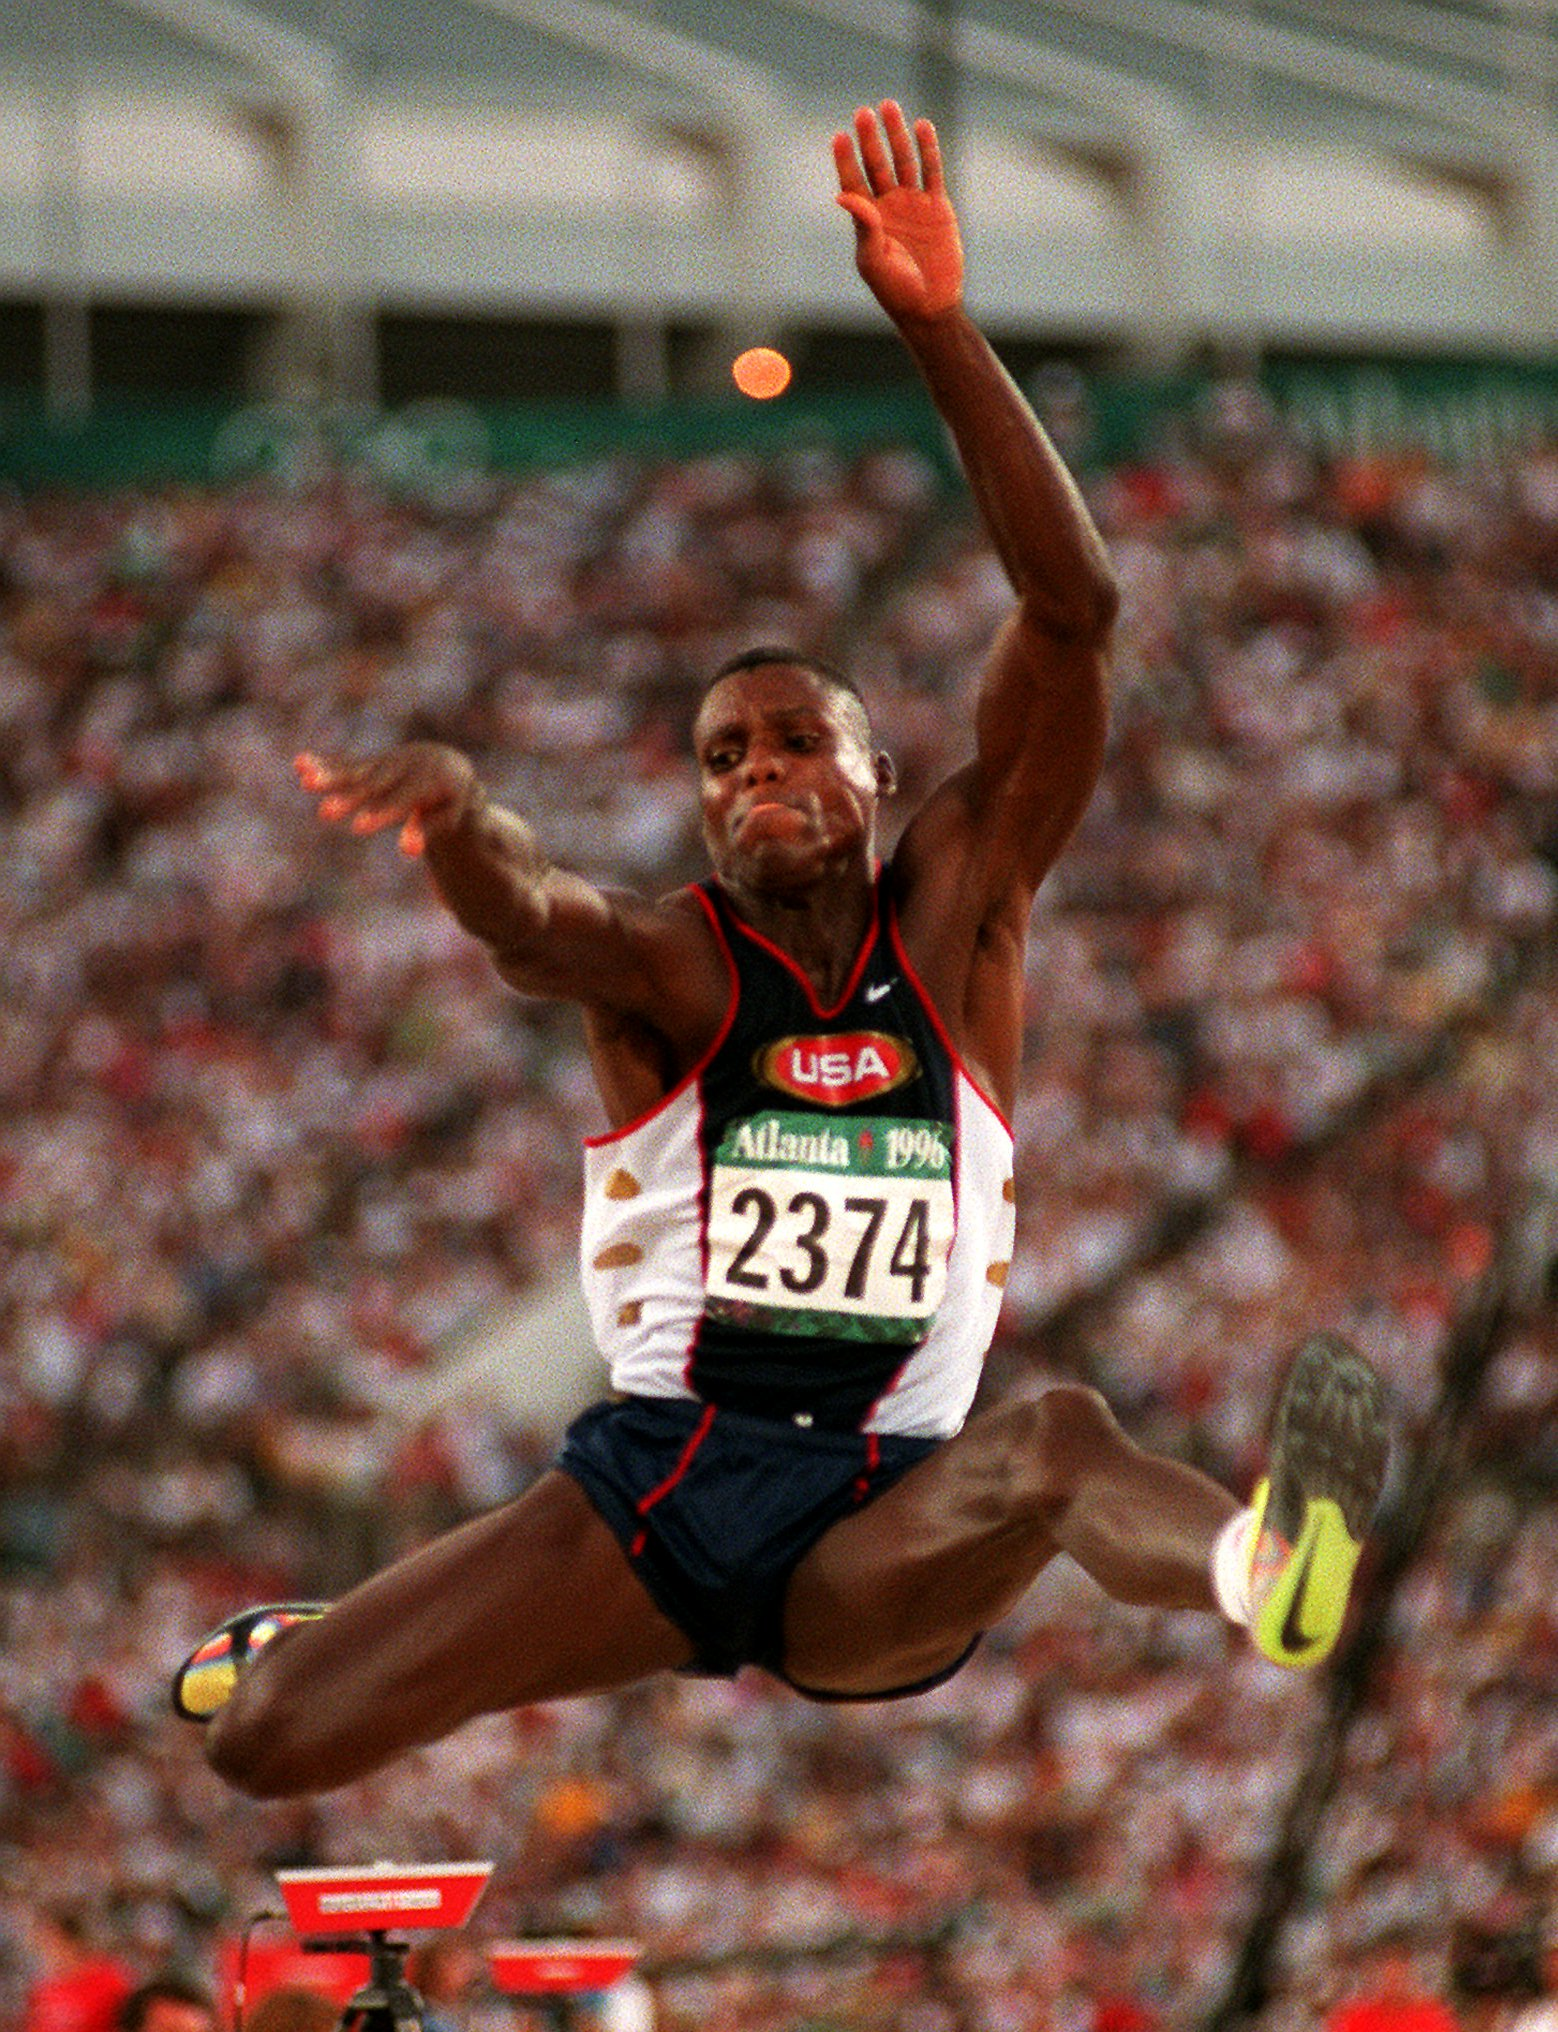 Carl Lewis of the United States takes his third jump during the men's long jump final at the 1996 Summer Olympic Games in Atlanta, Monday, July 29, 1996. Lewis won the gold medal. (AP Photo/Lynne Sladky)